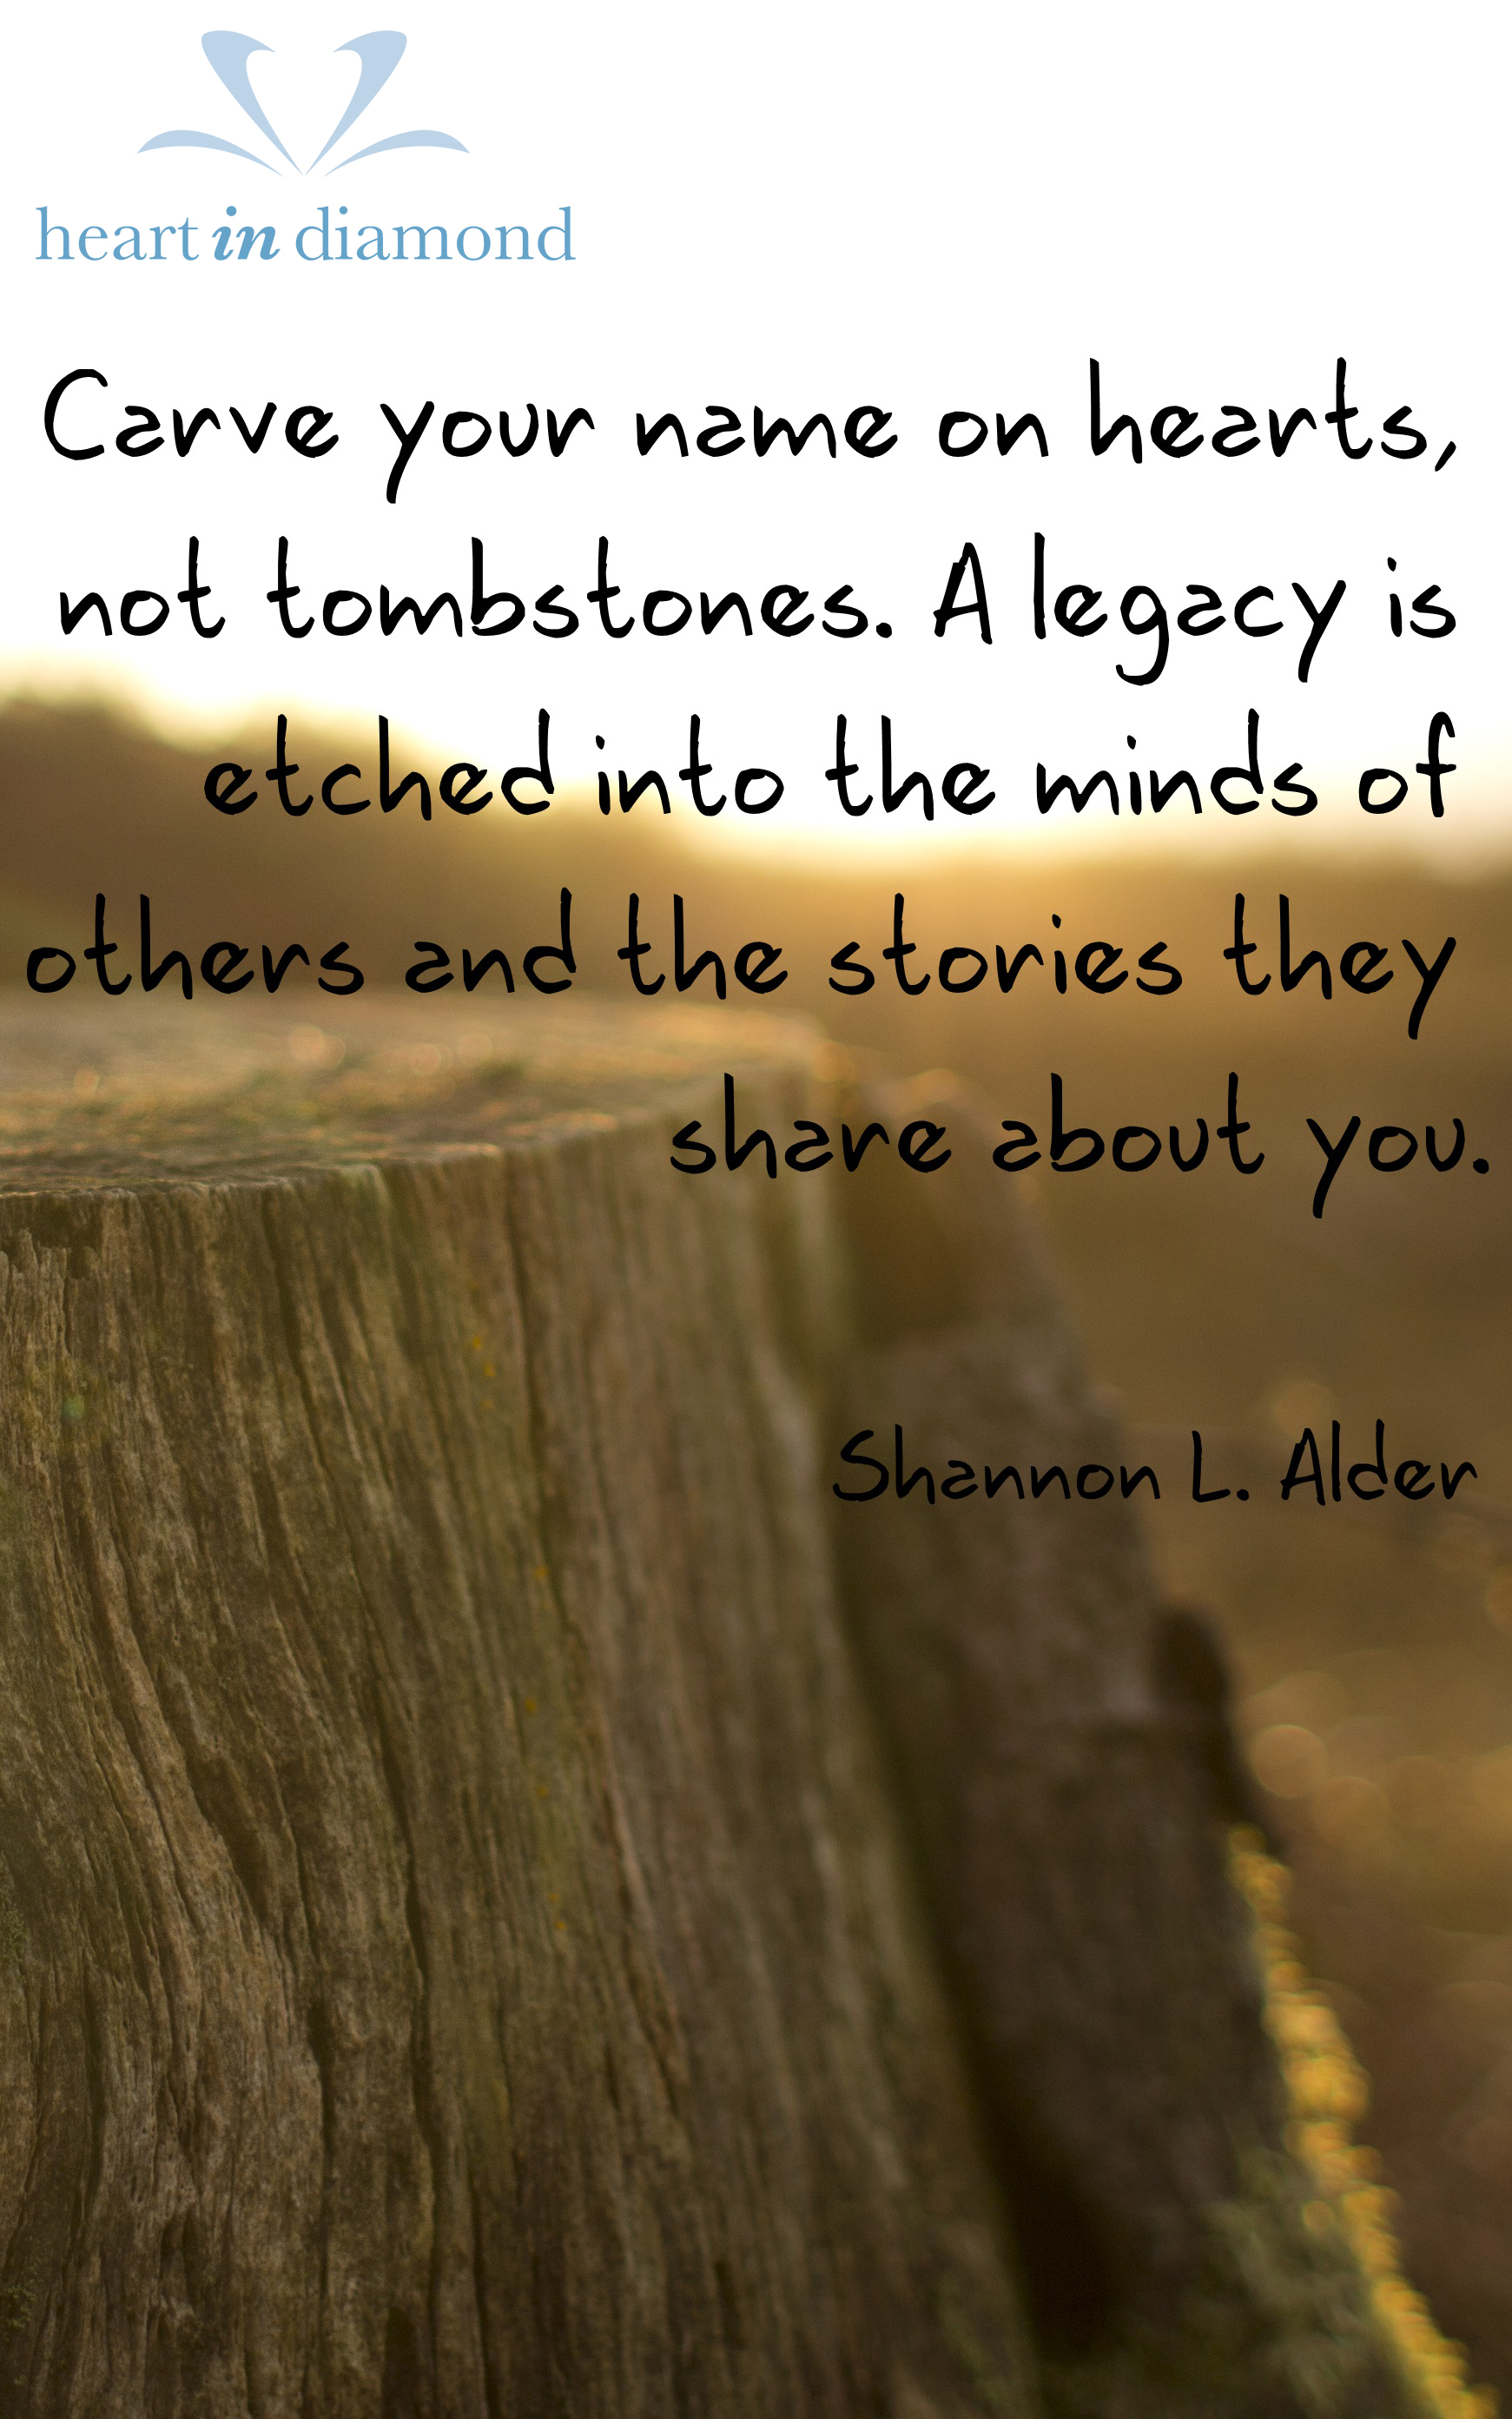 Alder quote: Carve your name on hearts, not tombstones. A legacy is etched into the minds of others and the stories they share about you